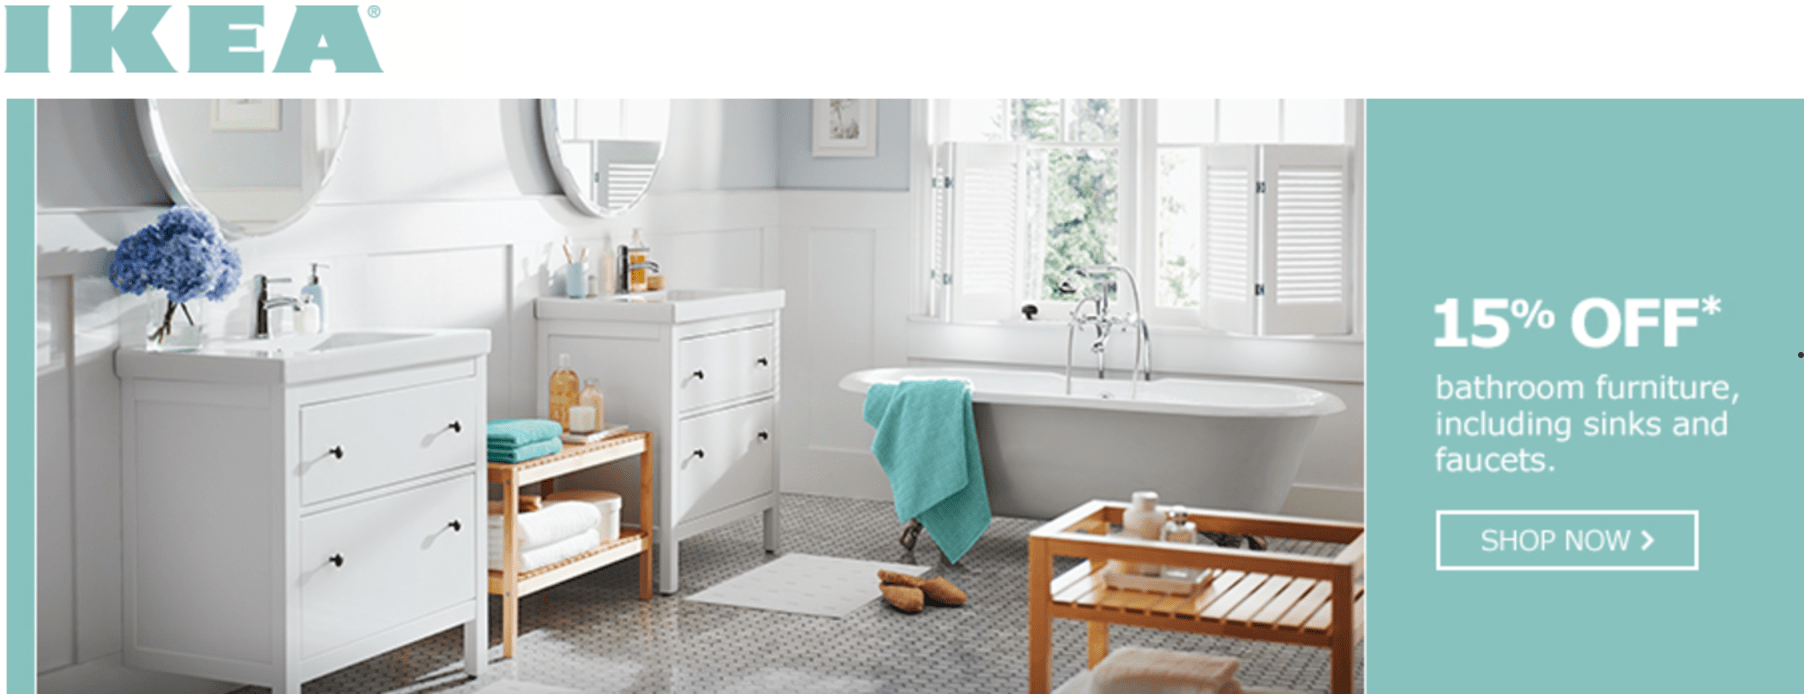 ikea canada has bathroom event sale available now the ikea canada